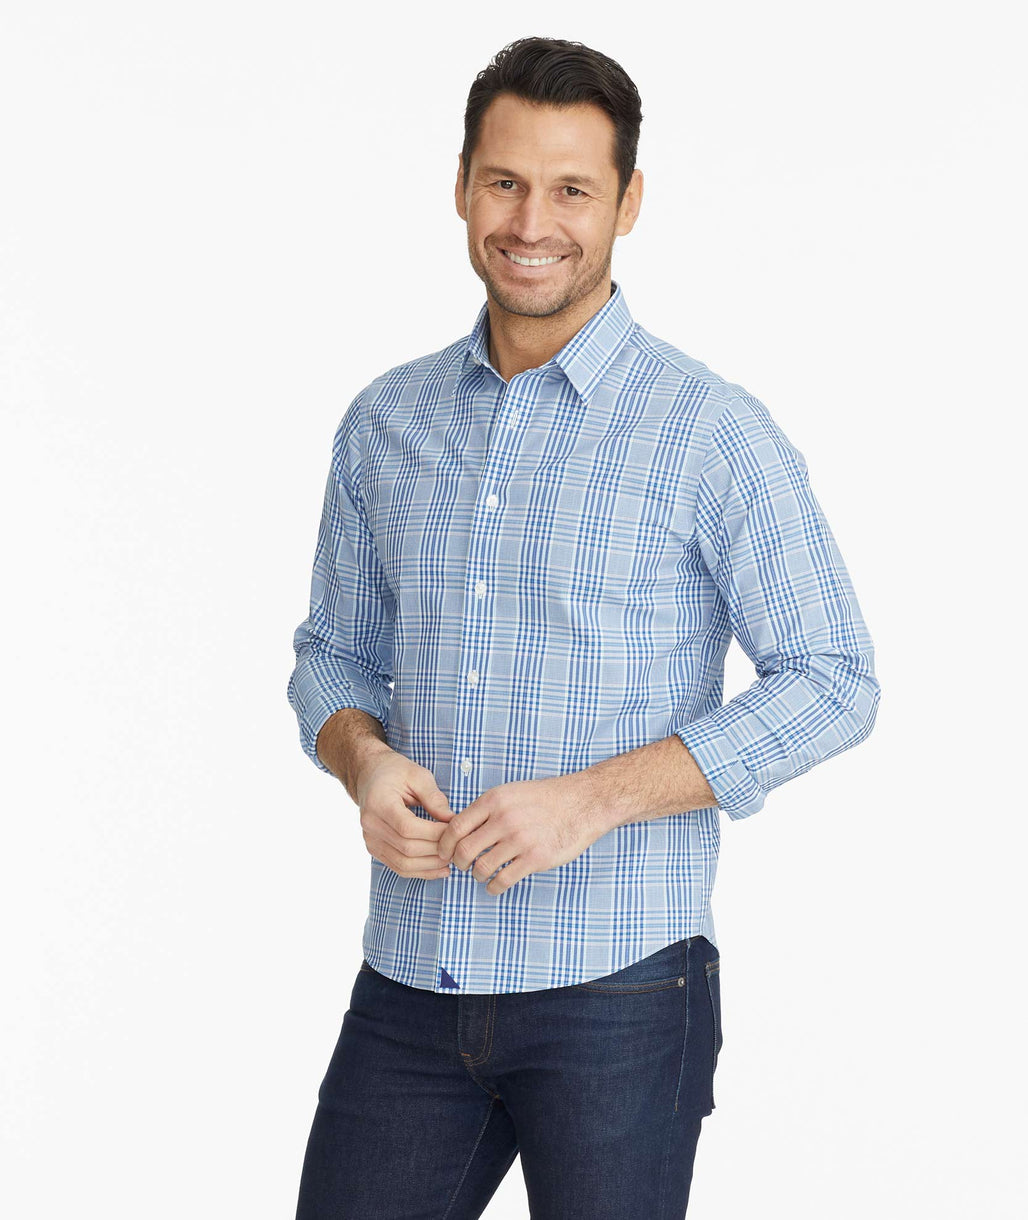 Model wearing a Blue Wrinkle-Free Reventon Shirt